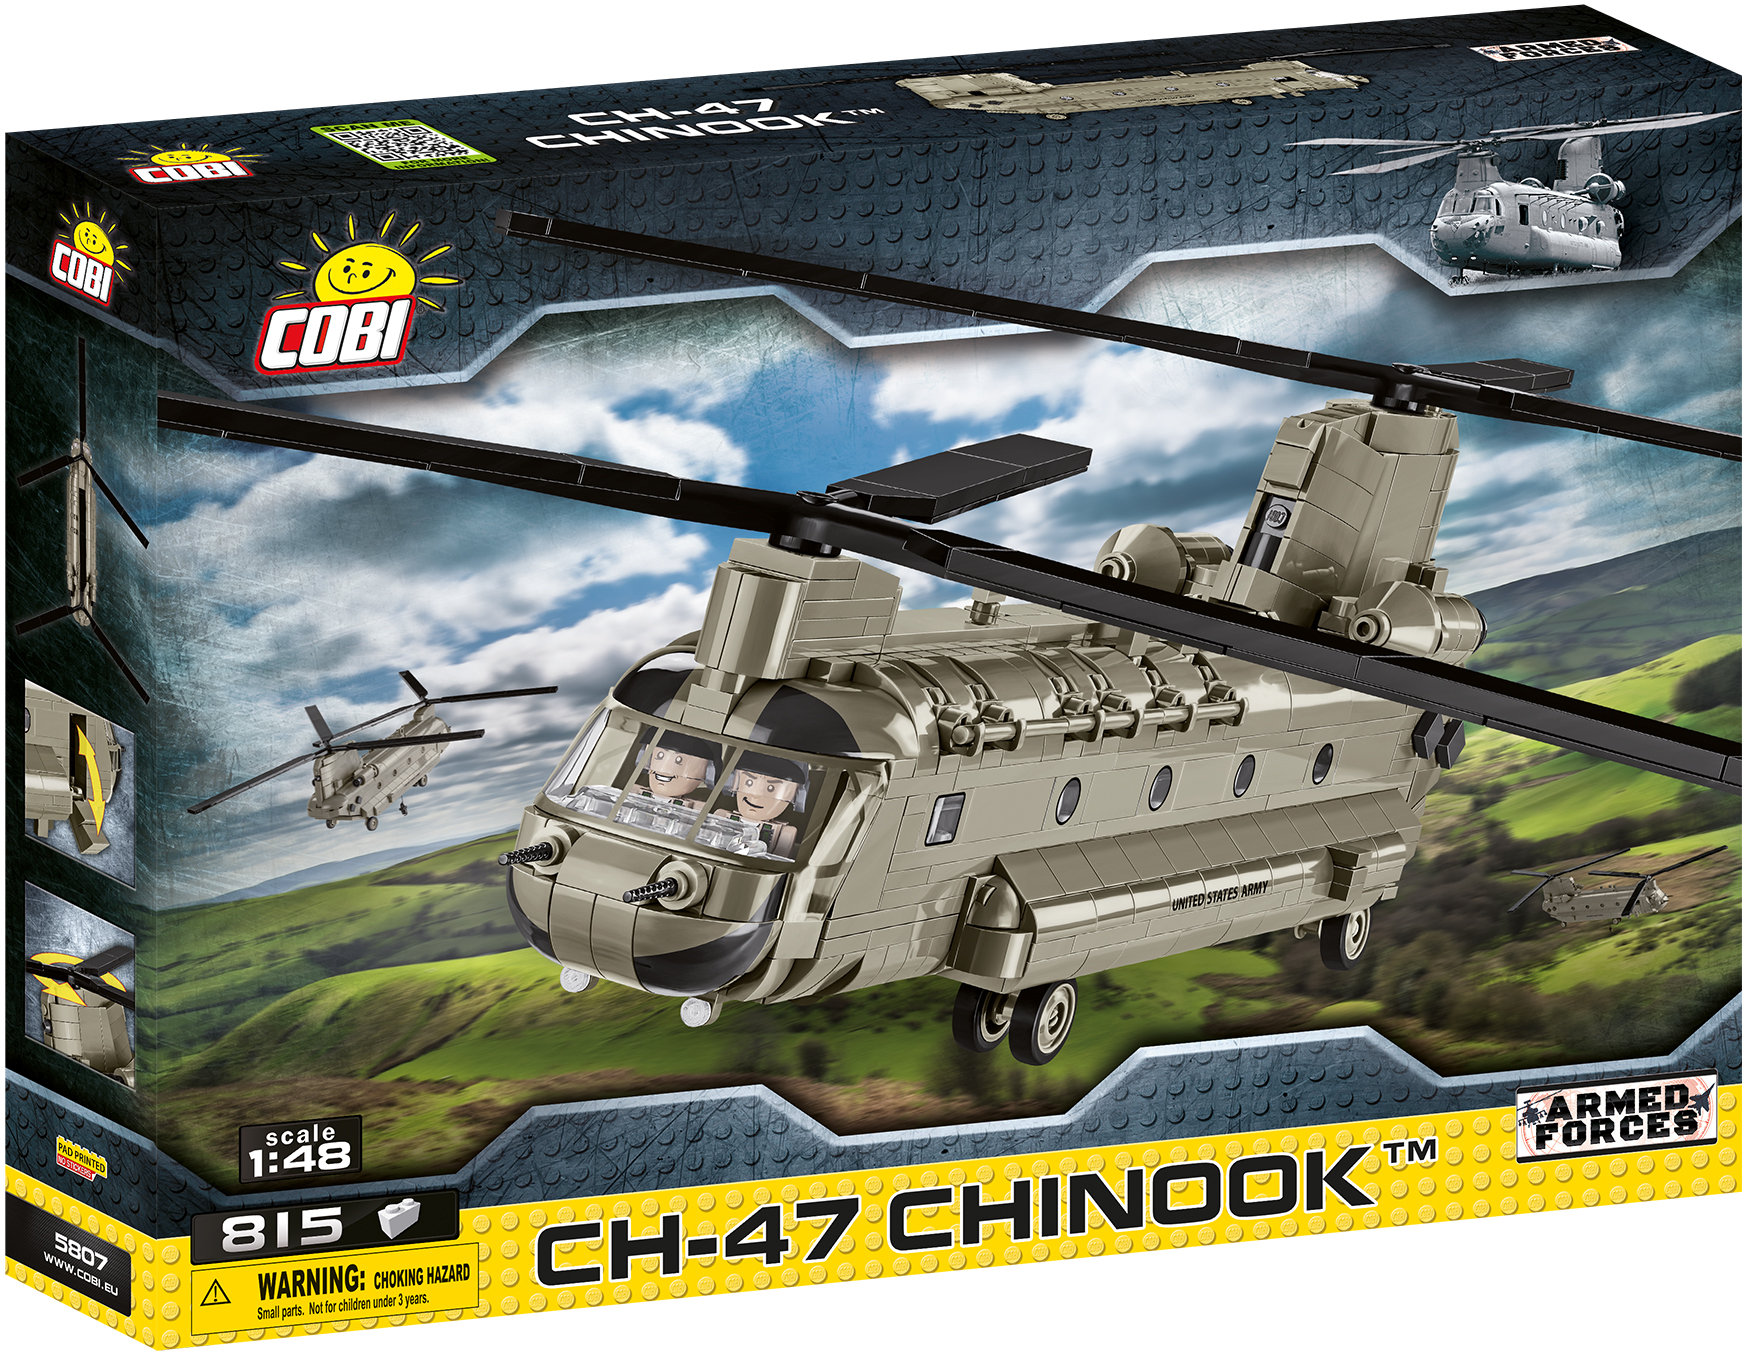 Cobi 5807 CH-47 CHINOOK Hubschrauber (Armed Forces - Planes)